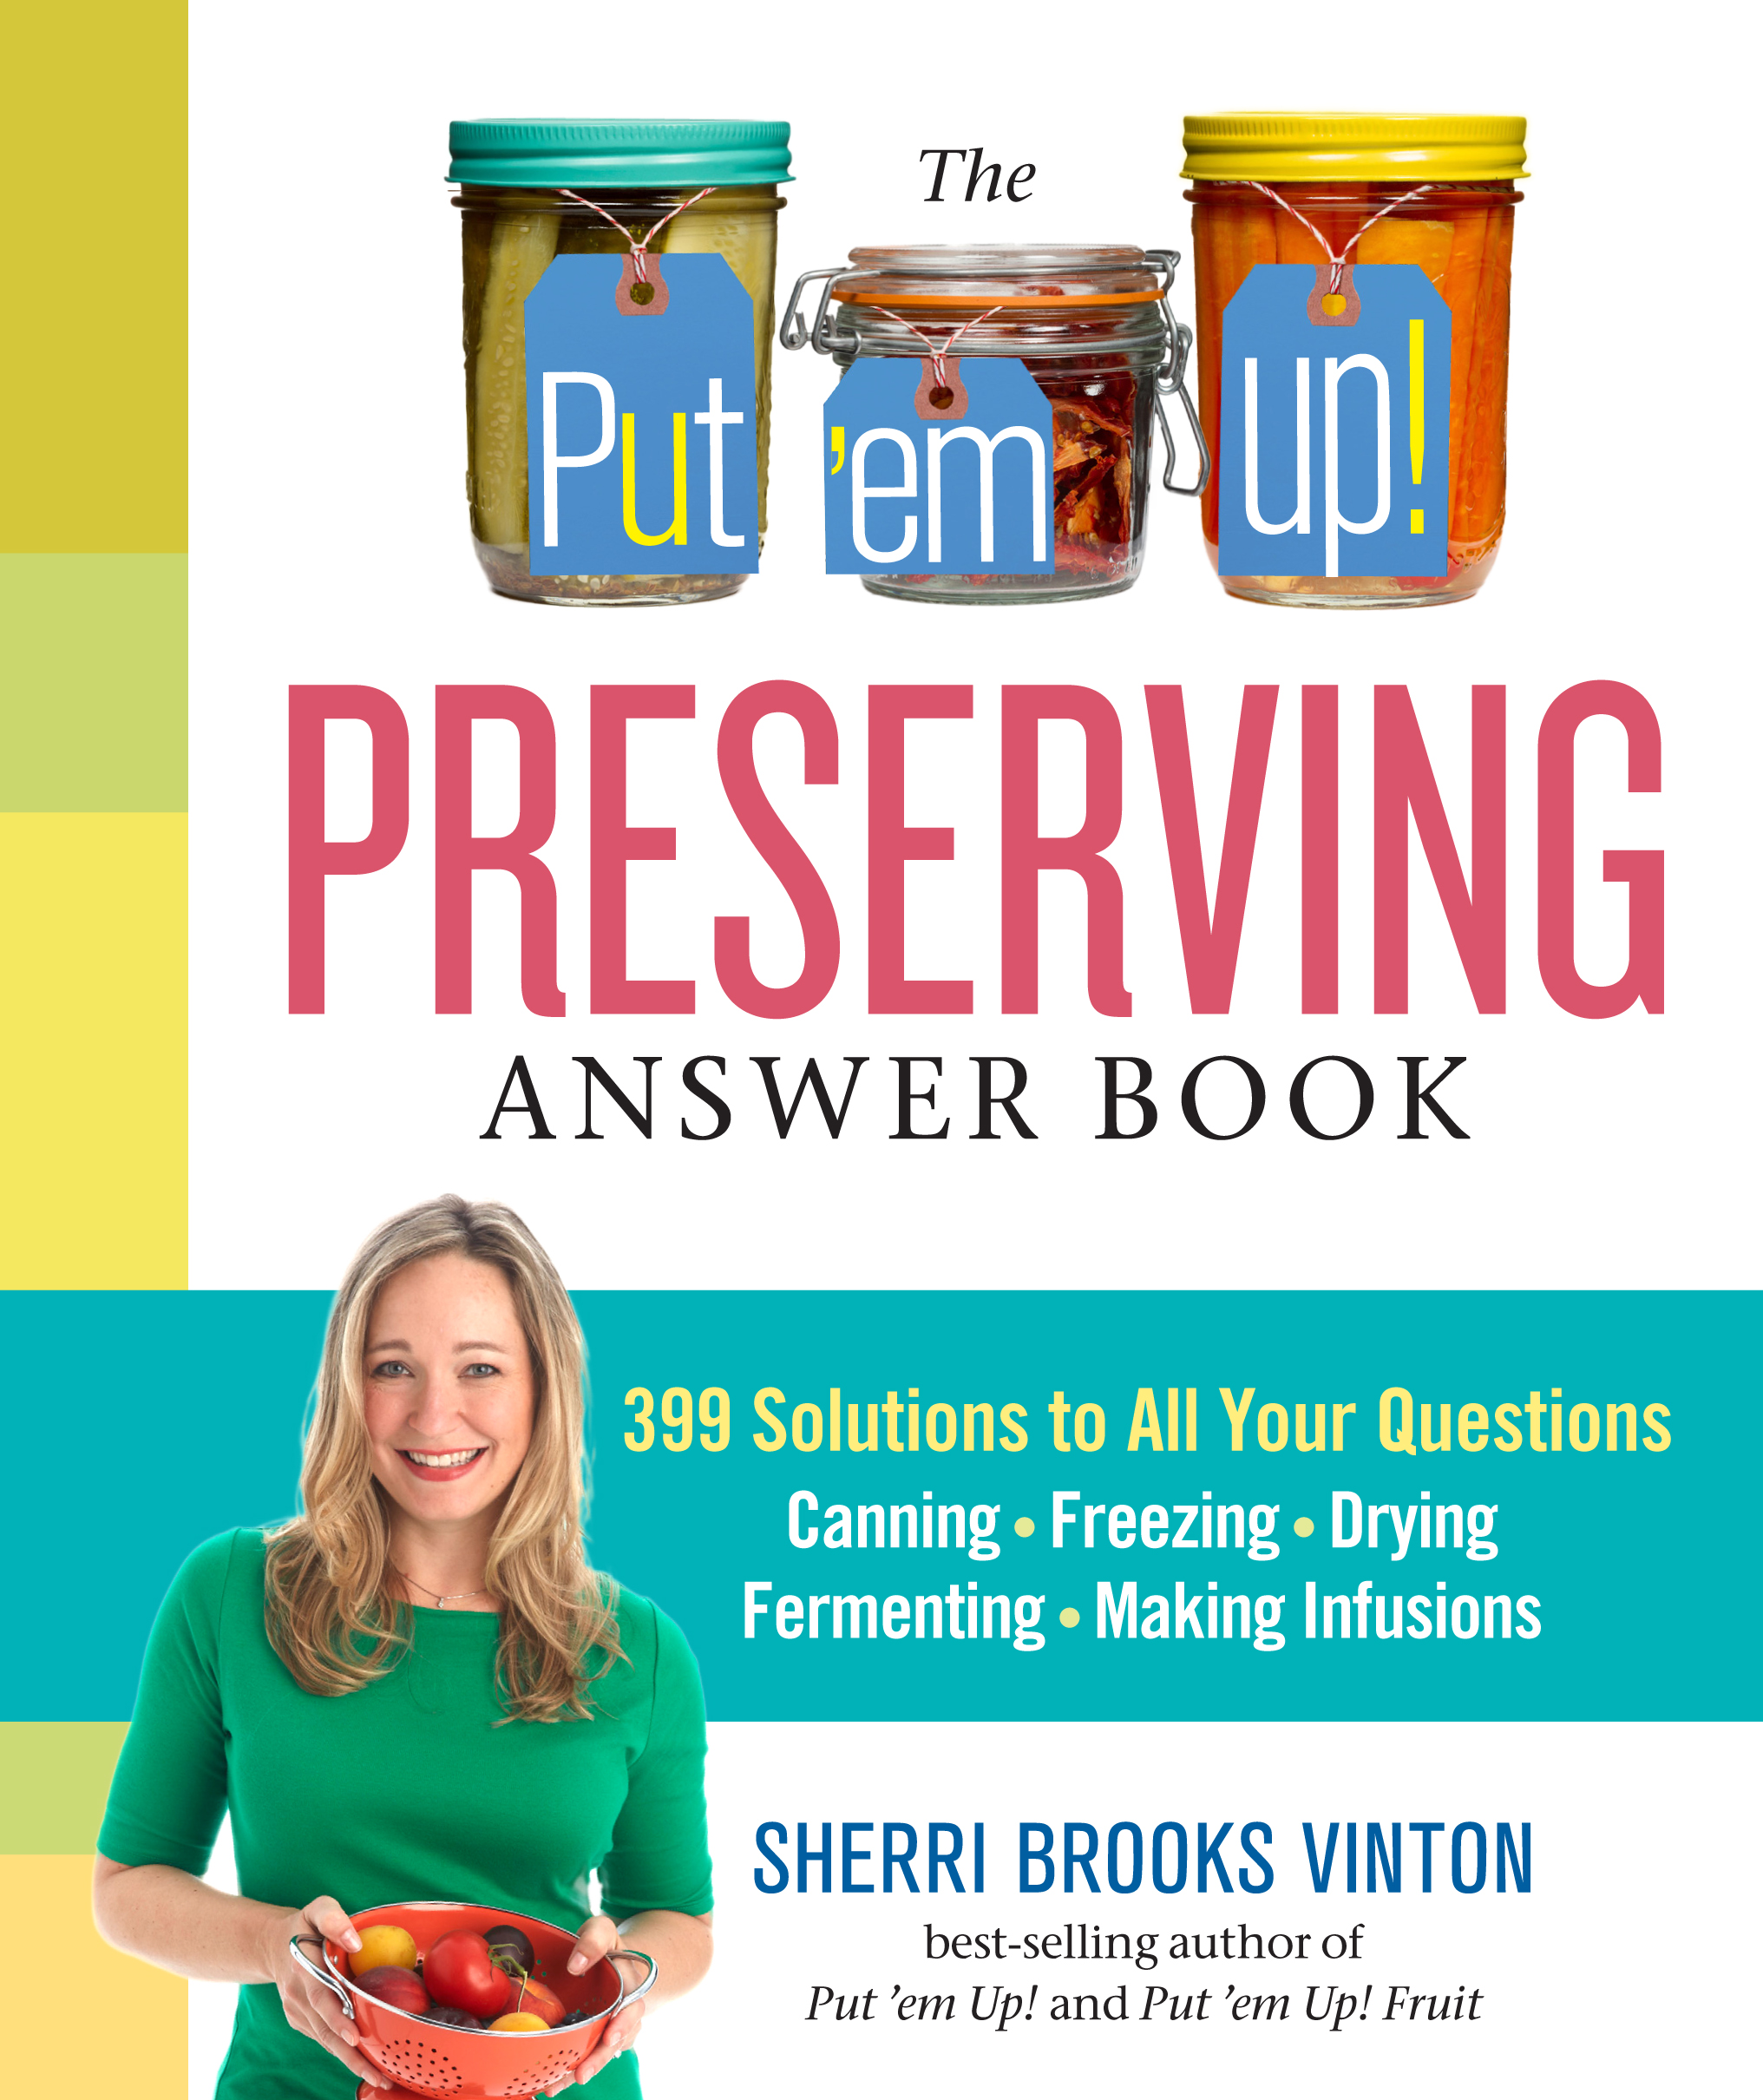 The Put 'em Up! Preserving Answer Book 399 Solutions to All Your Questions: Canning, Freezing, Drying, Fermenting, Making Infusions - Sherri Brooks Vinton